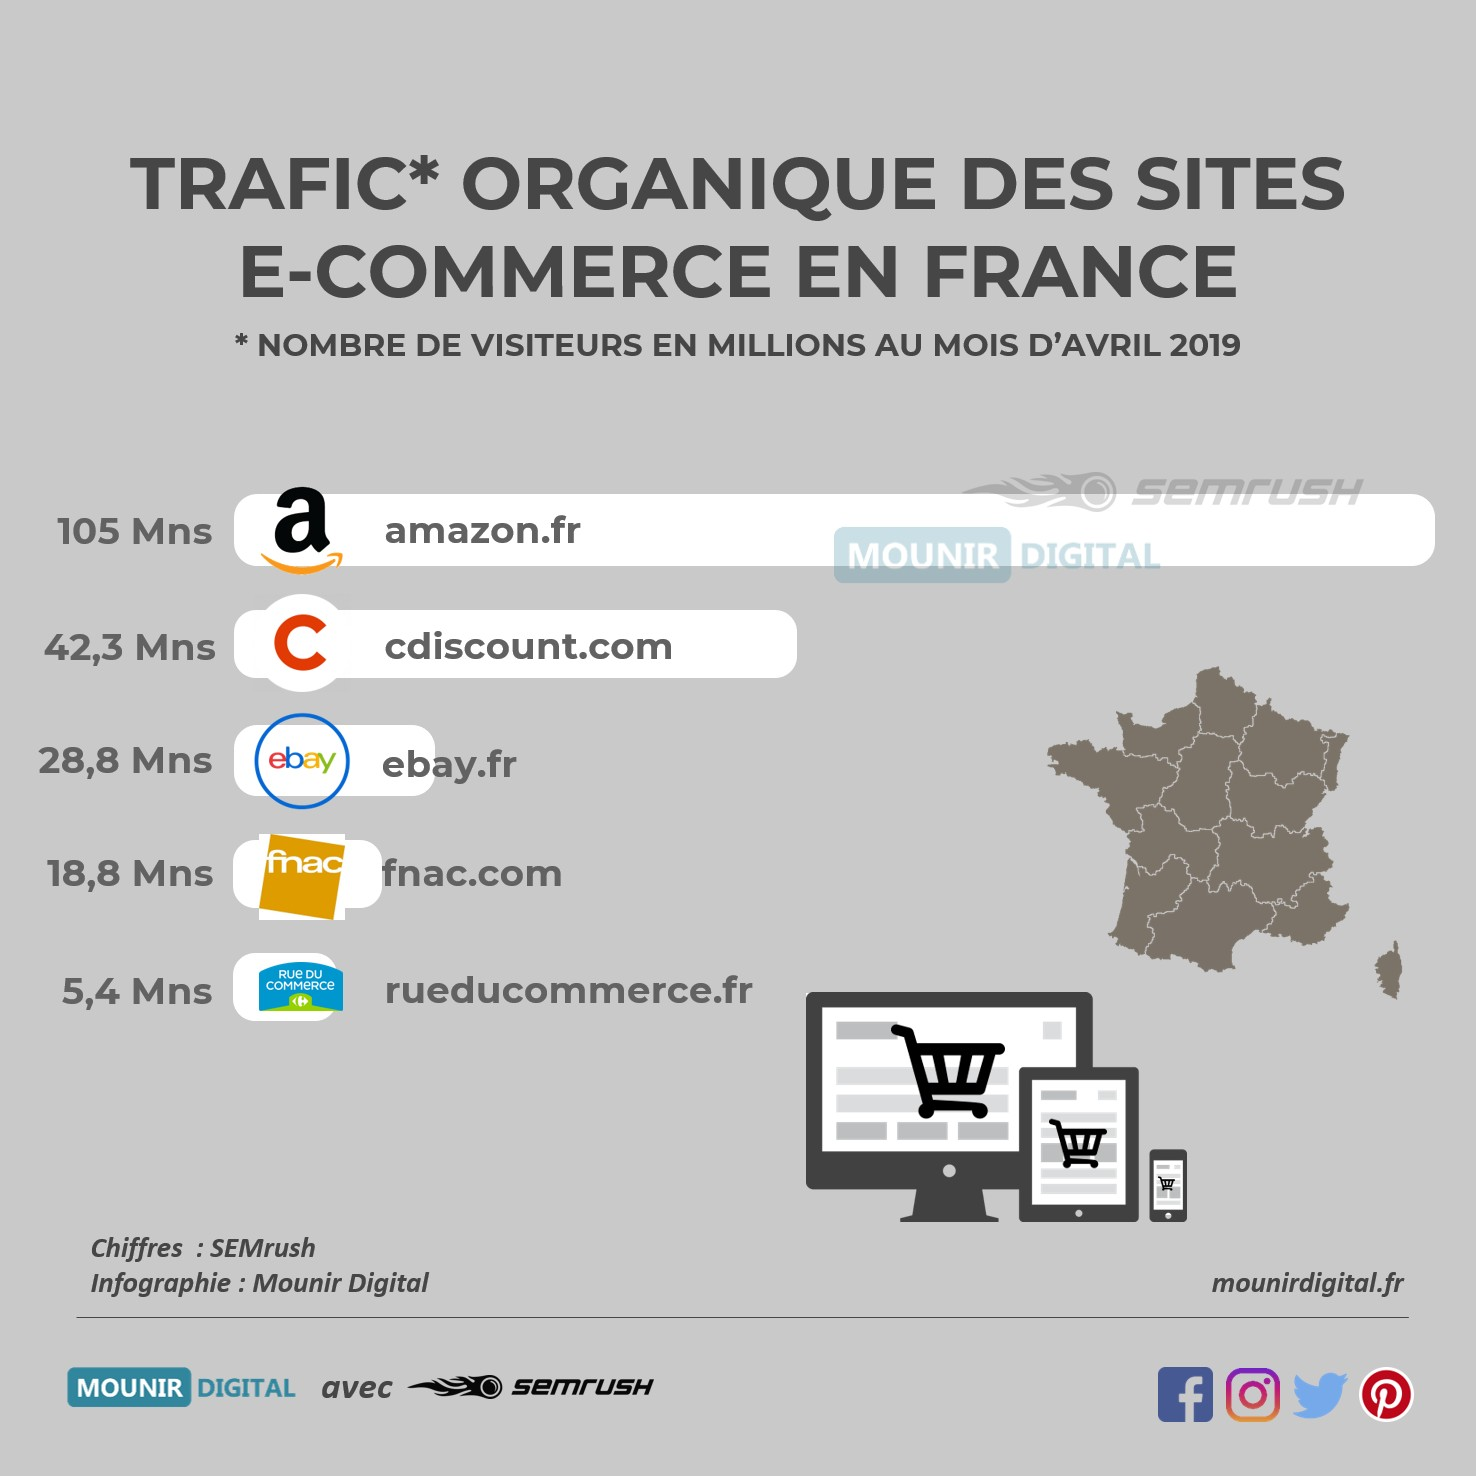 Trafic organique e-commerce - Infographies collabs - Semrush et Mounir Digital